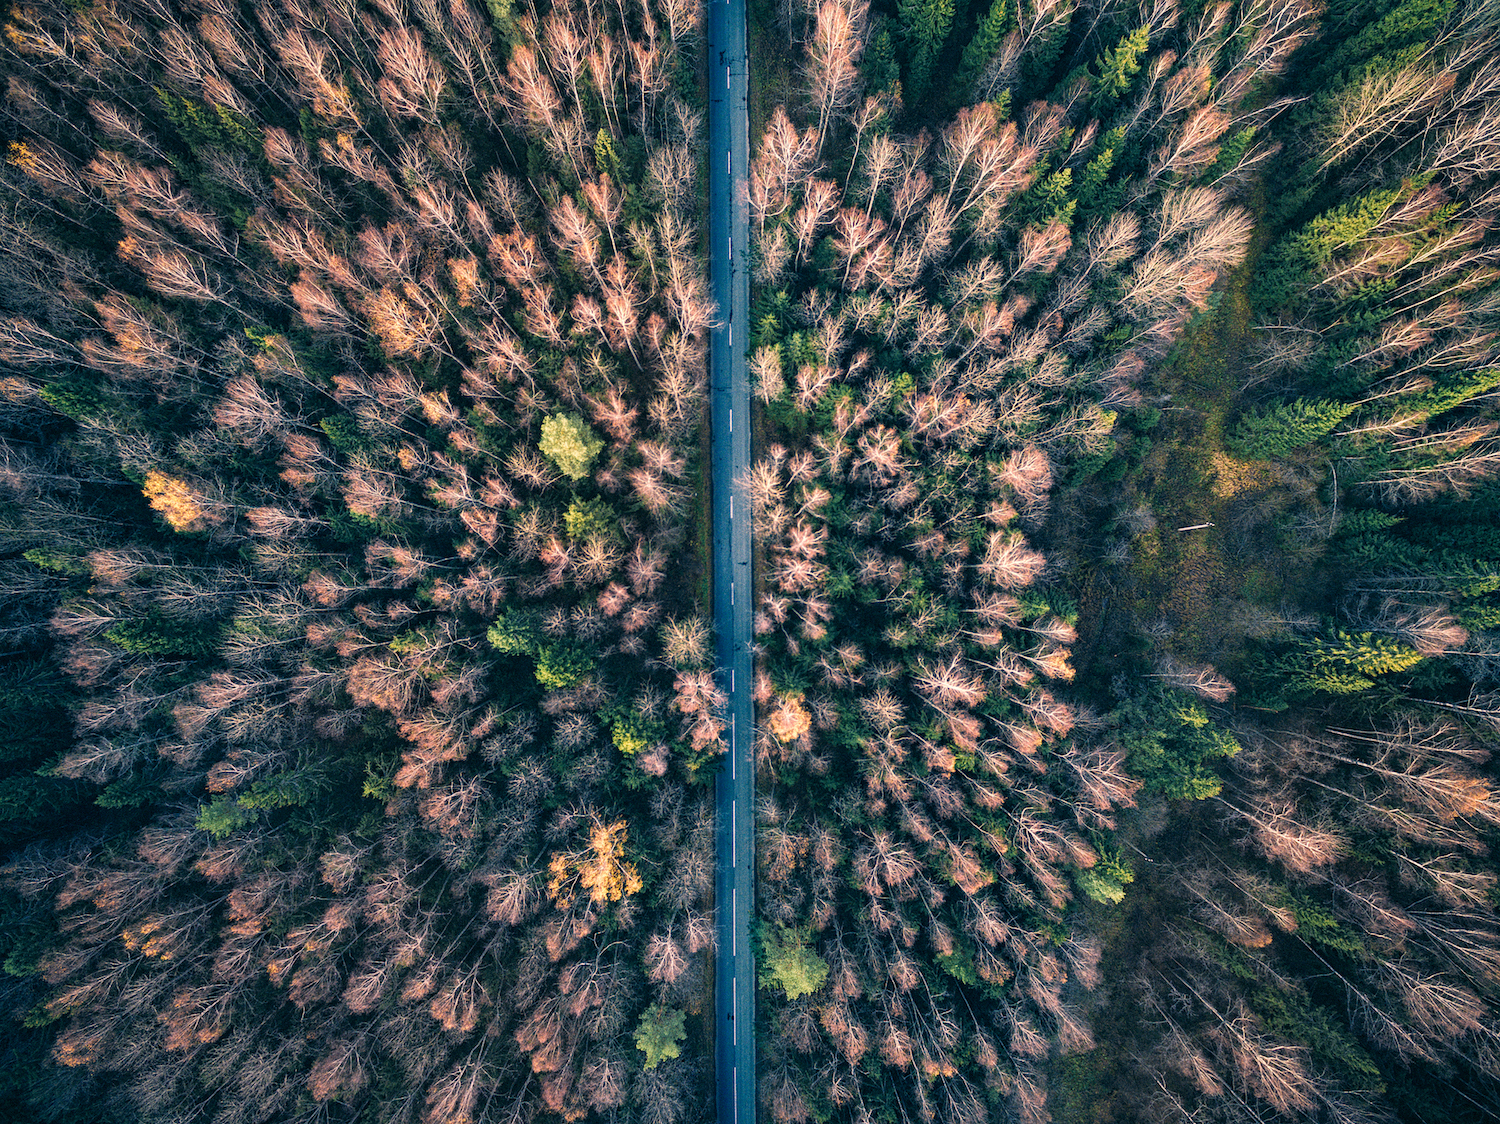 500px Blog » 10 Tips That'll Take Your Drone Photography to